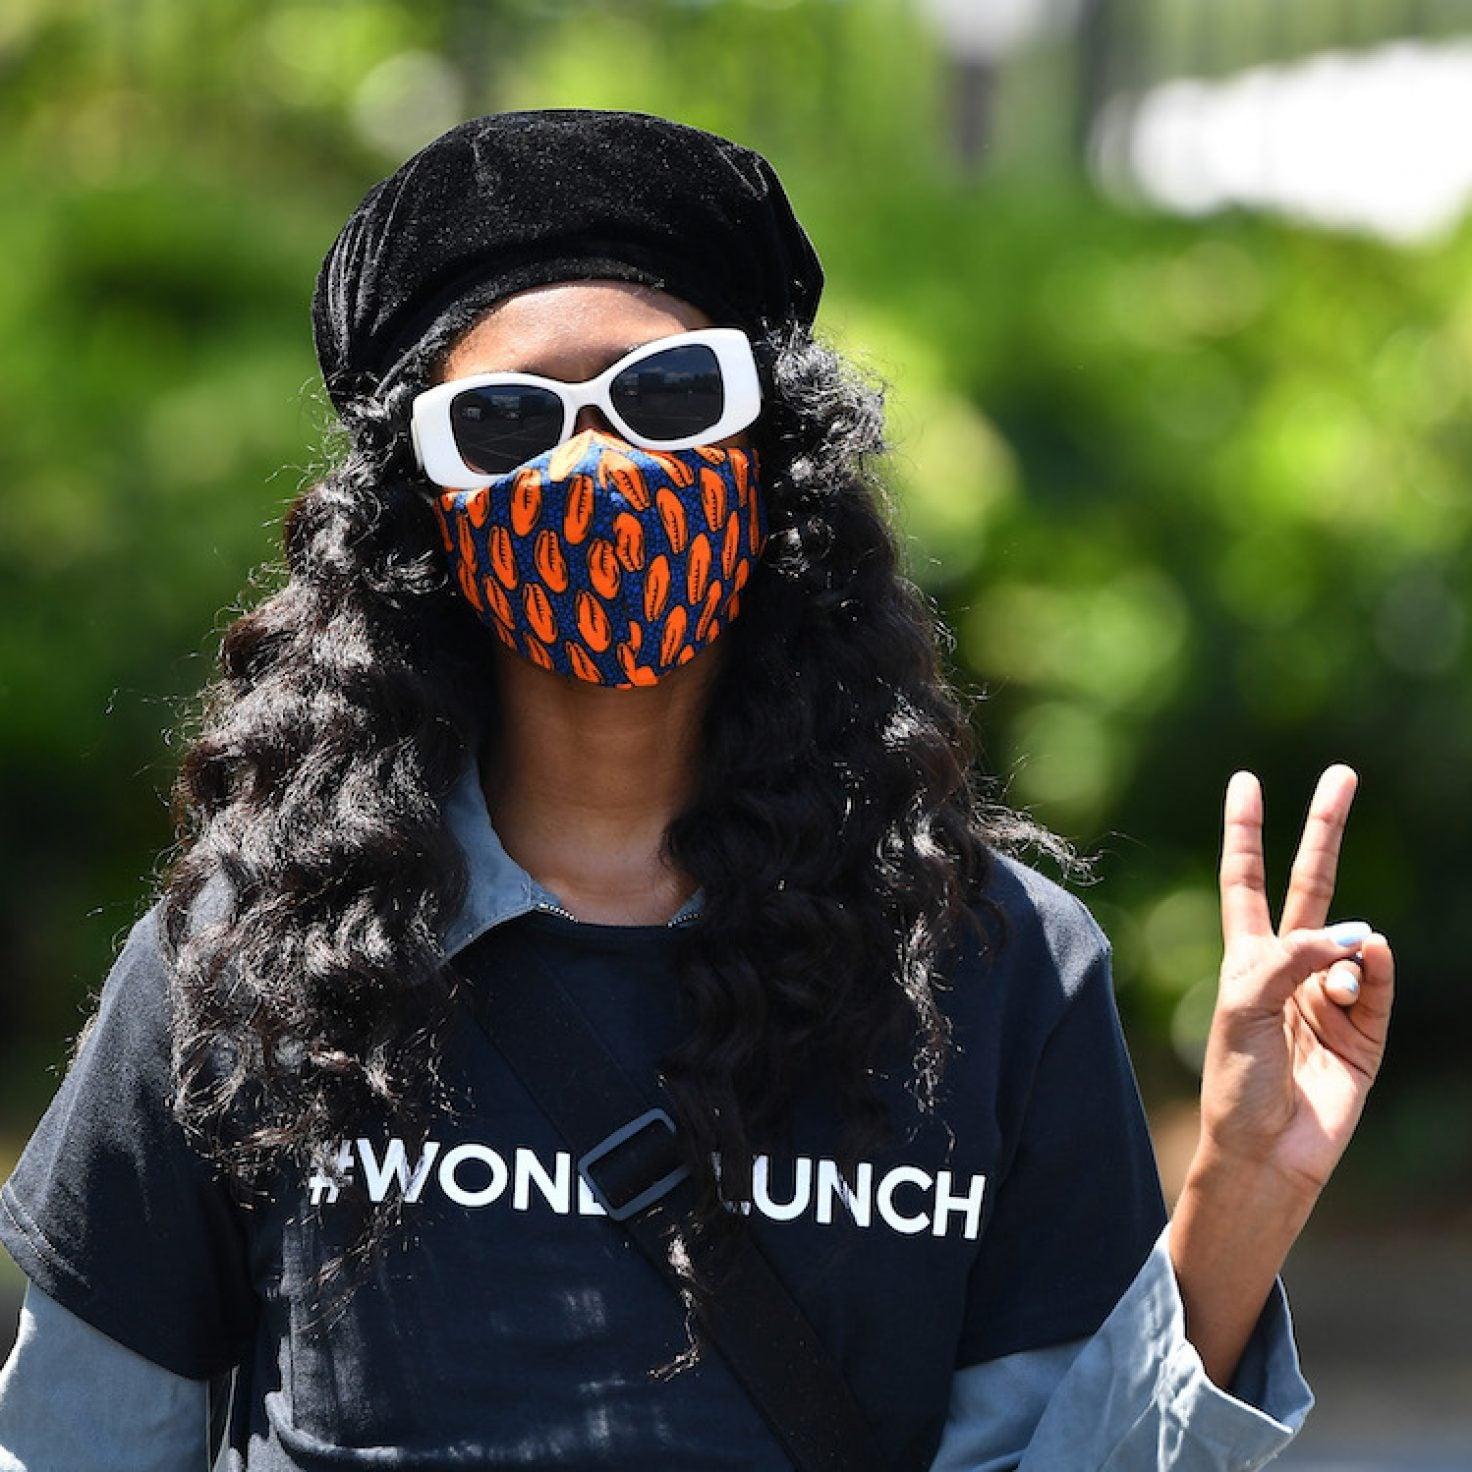 Janelle Monáe Feeds 5,000 Families At Wondalunch In Atlanta